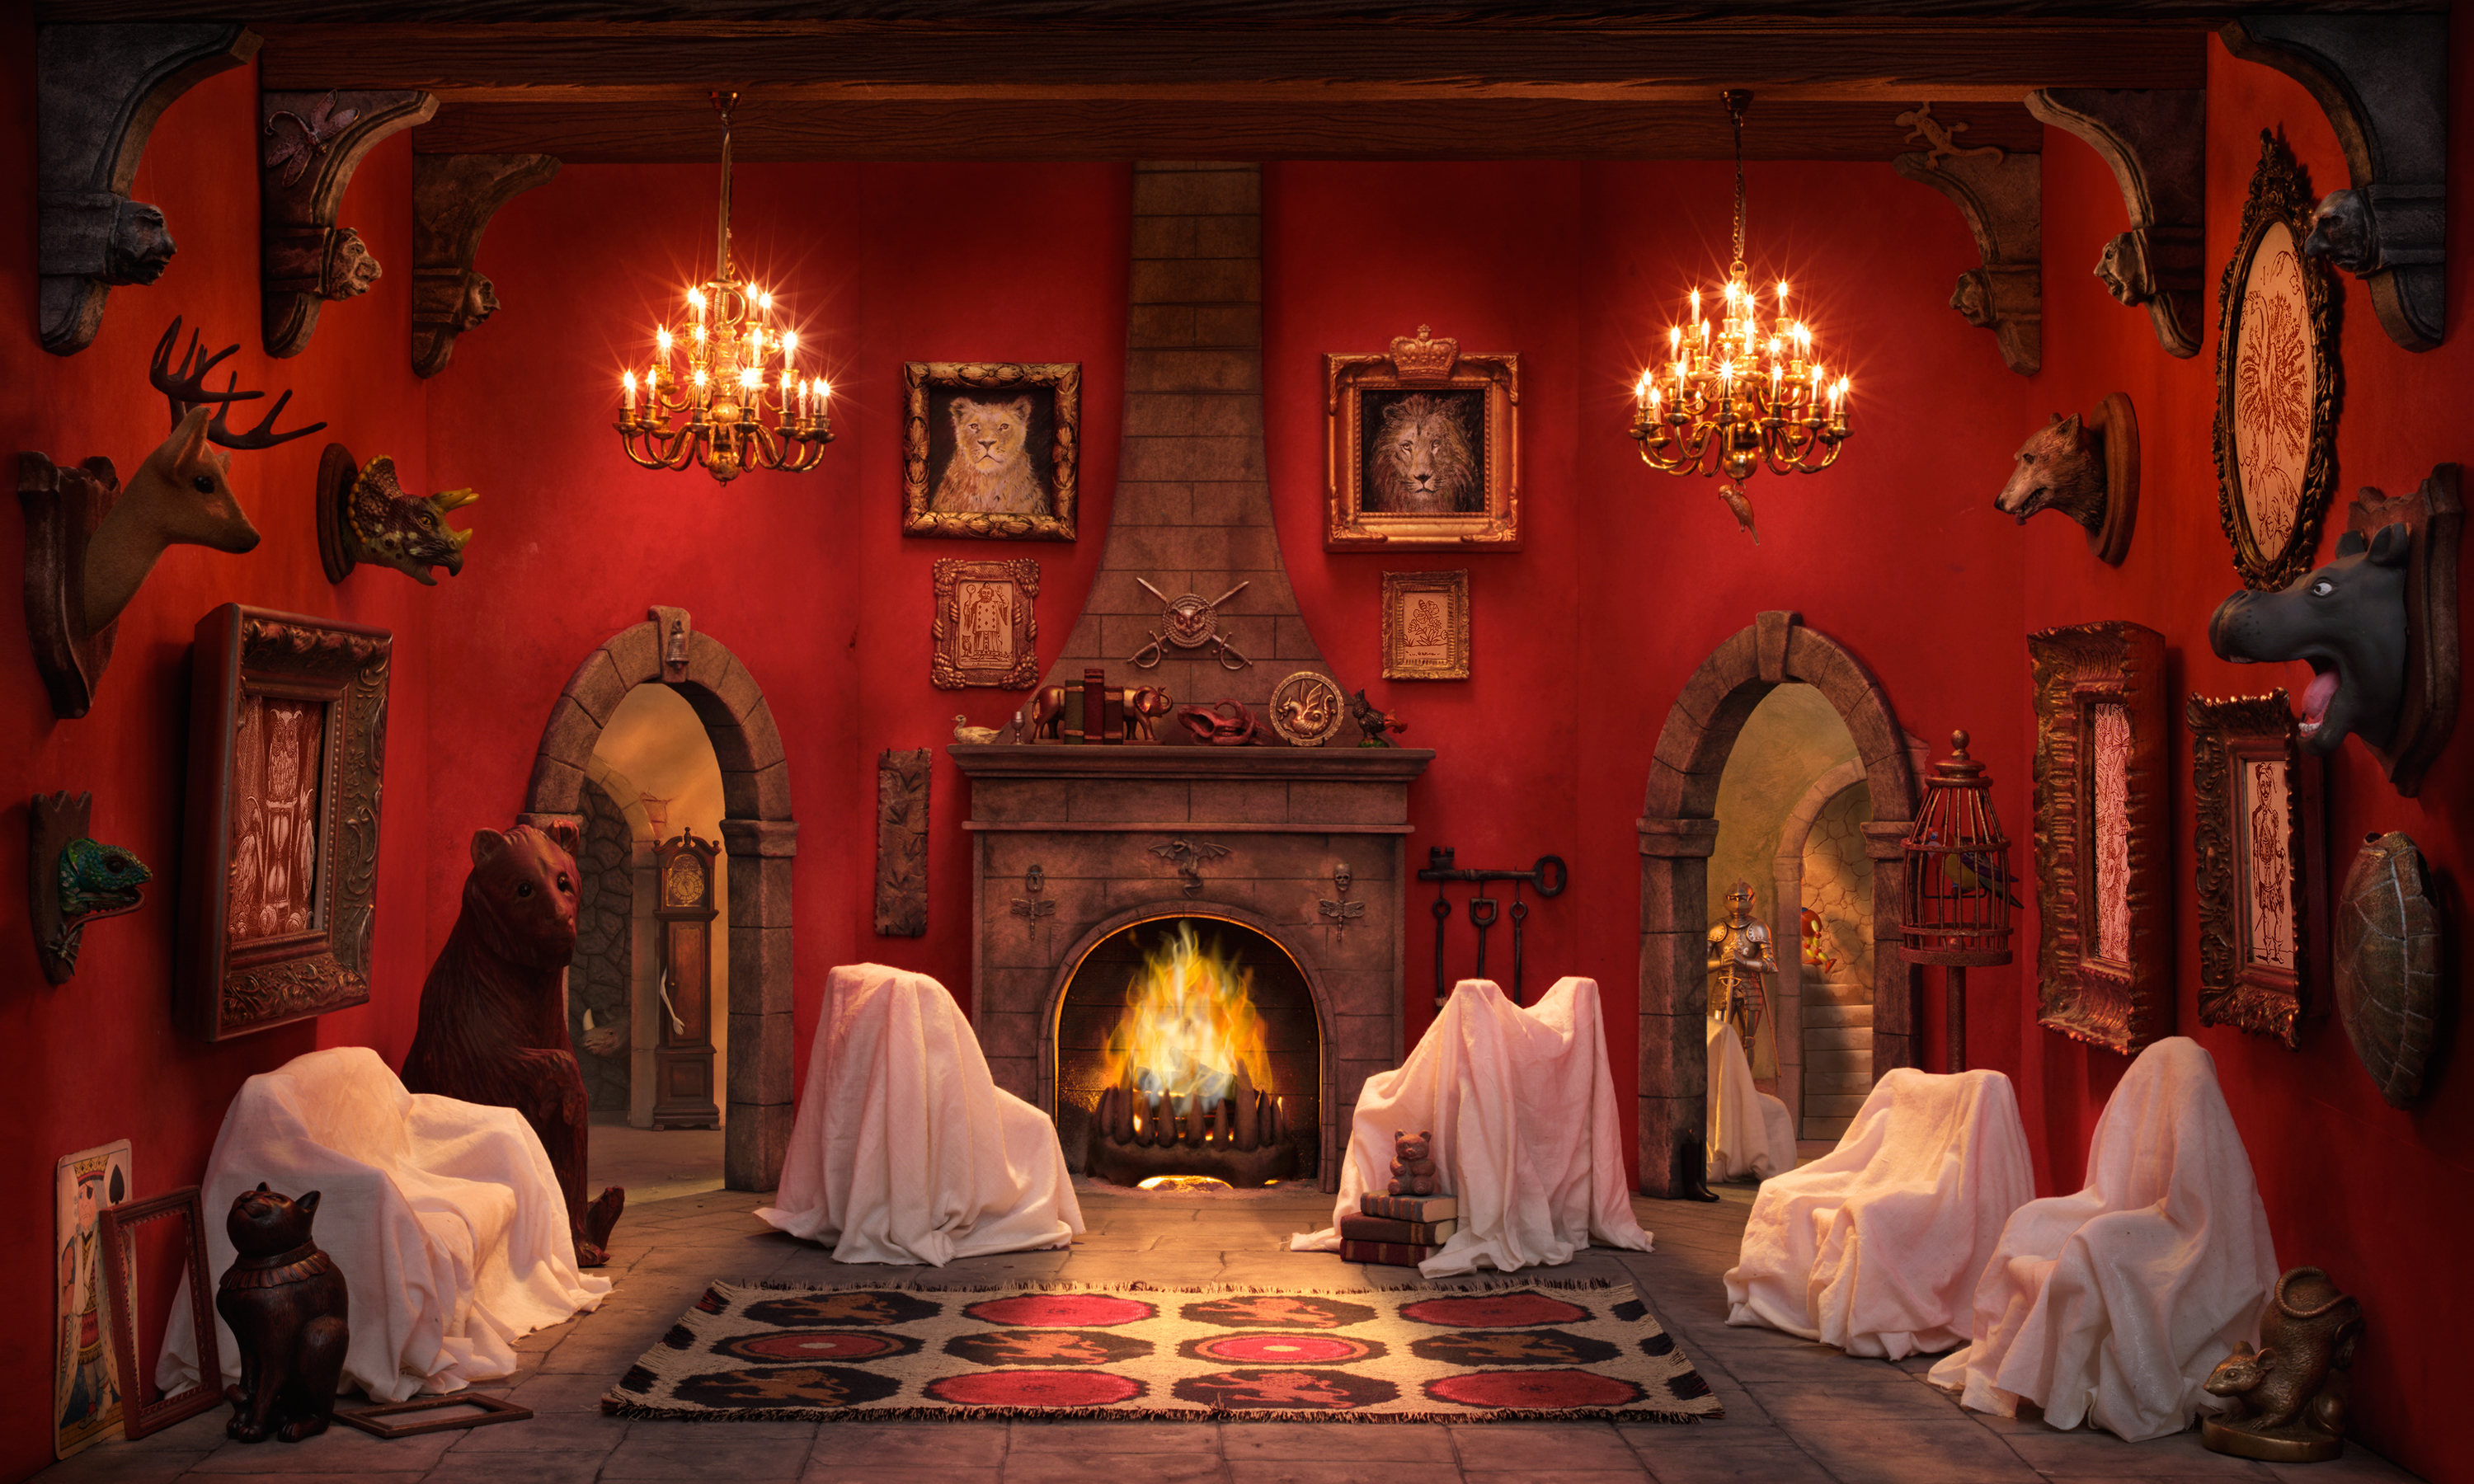 Walter Wick, <i>In A Scary Scary Castle from Can You See What I See? On A Scary Scary Night (Red Room)</i>, 2007, Pigmented inkjet photograph, 50 x 30 in., Gift of Walter Wick and Linda Cheverton Wick, 2015.116.13LIC